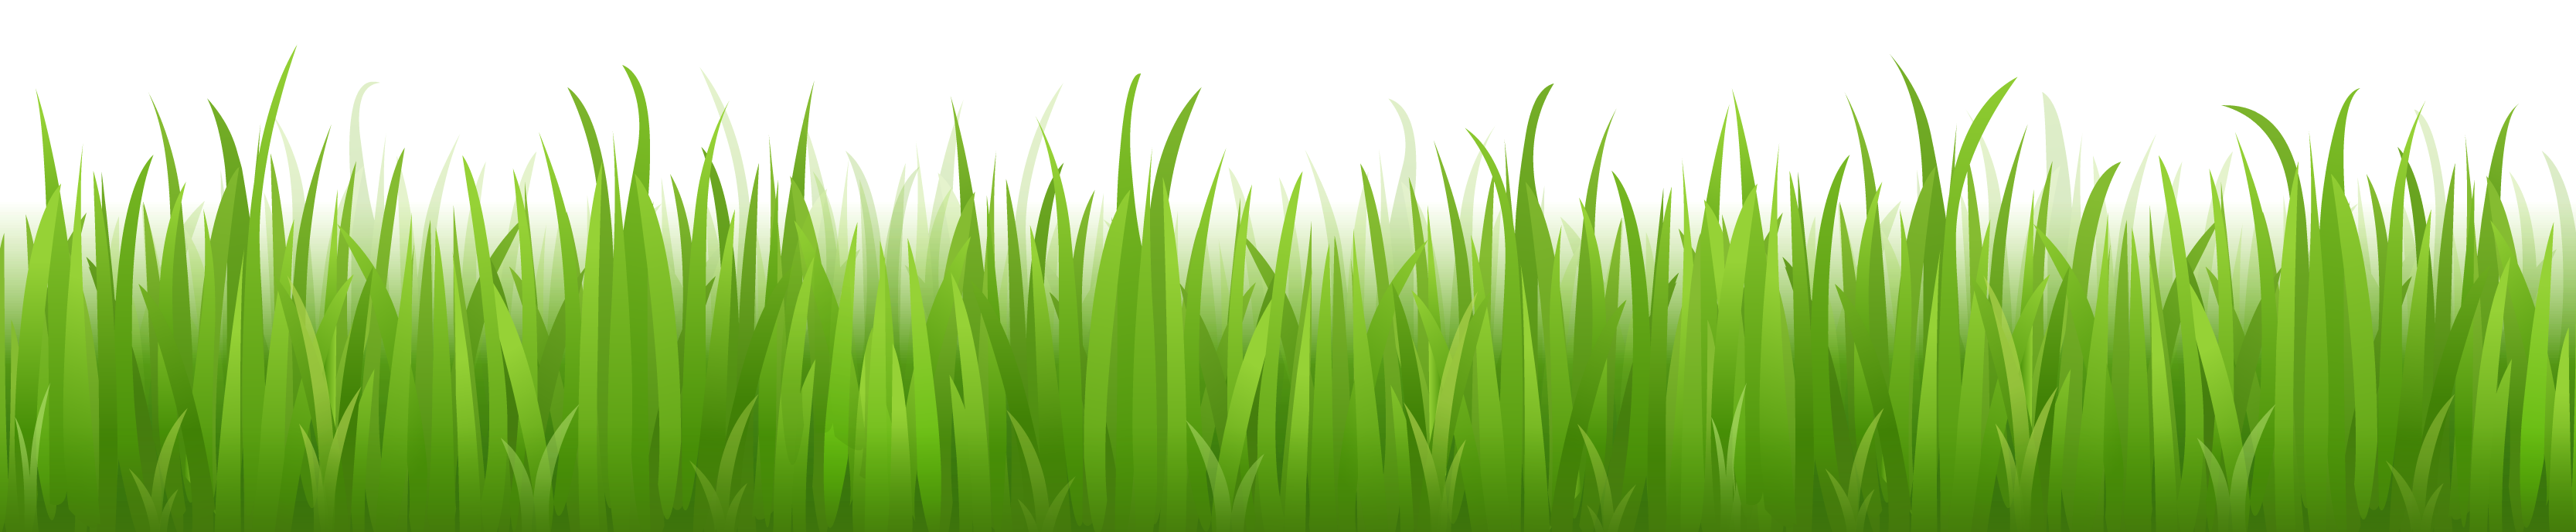 clipart library download Lawn clipart quehaceres. Animated free on dumielauxepices.